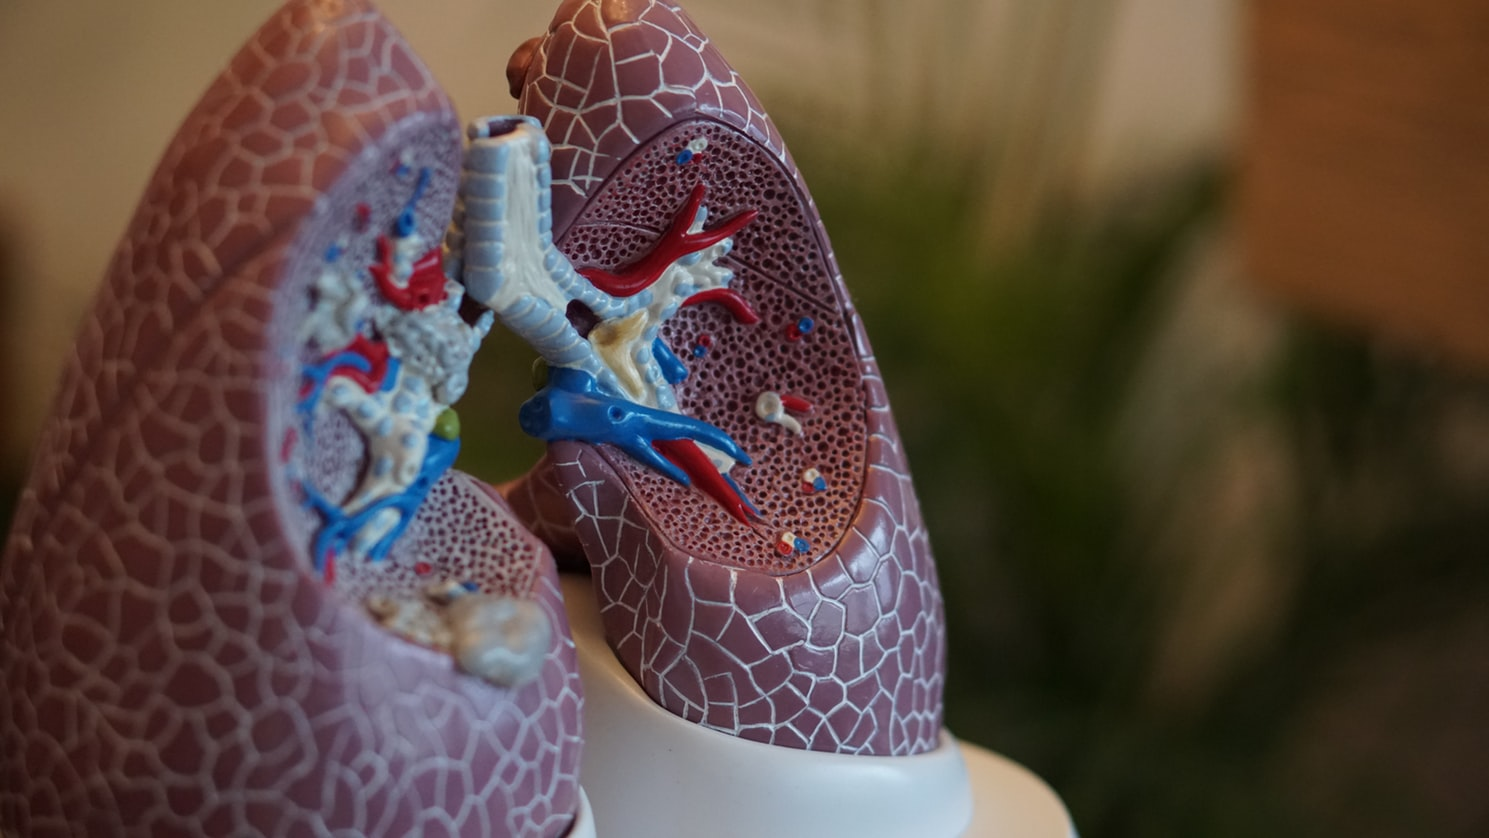 A mold of human lungs. Respitory issues are a common reason for senior hospitalization